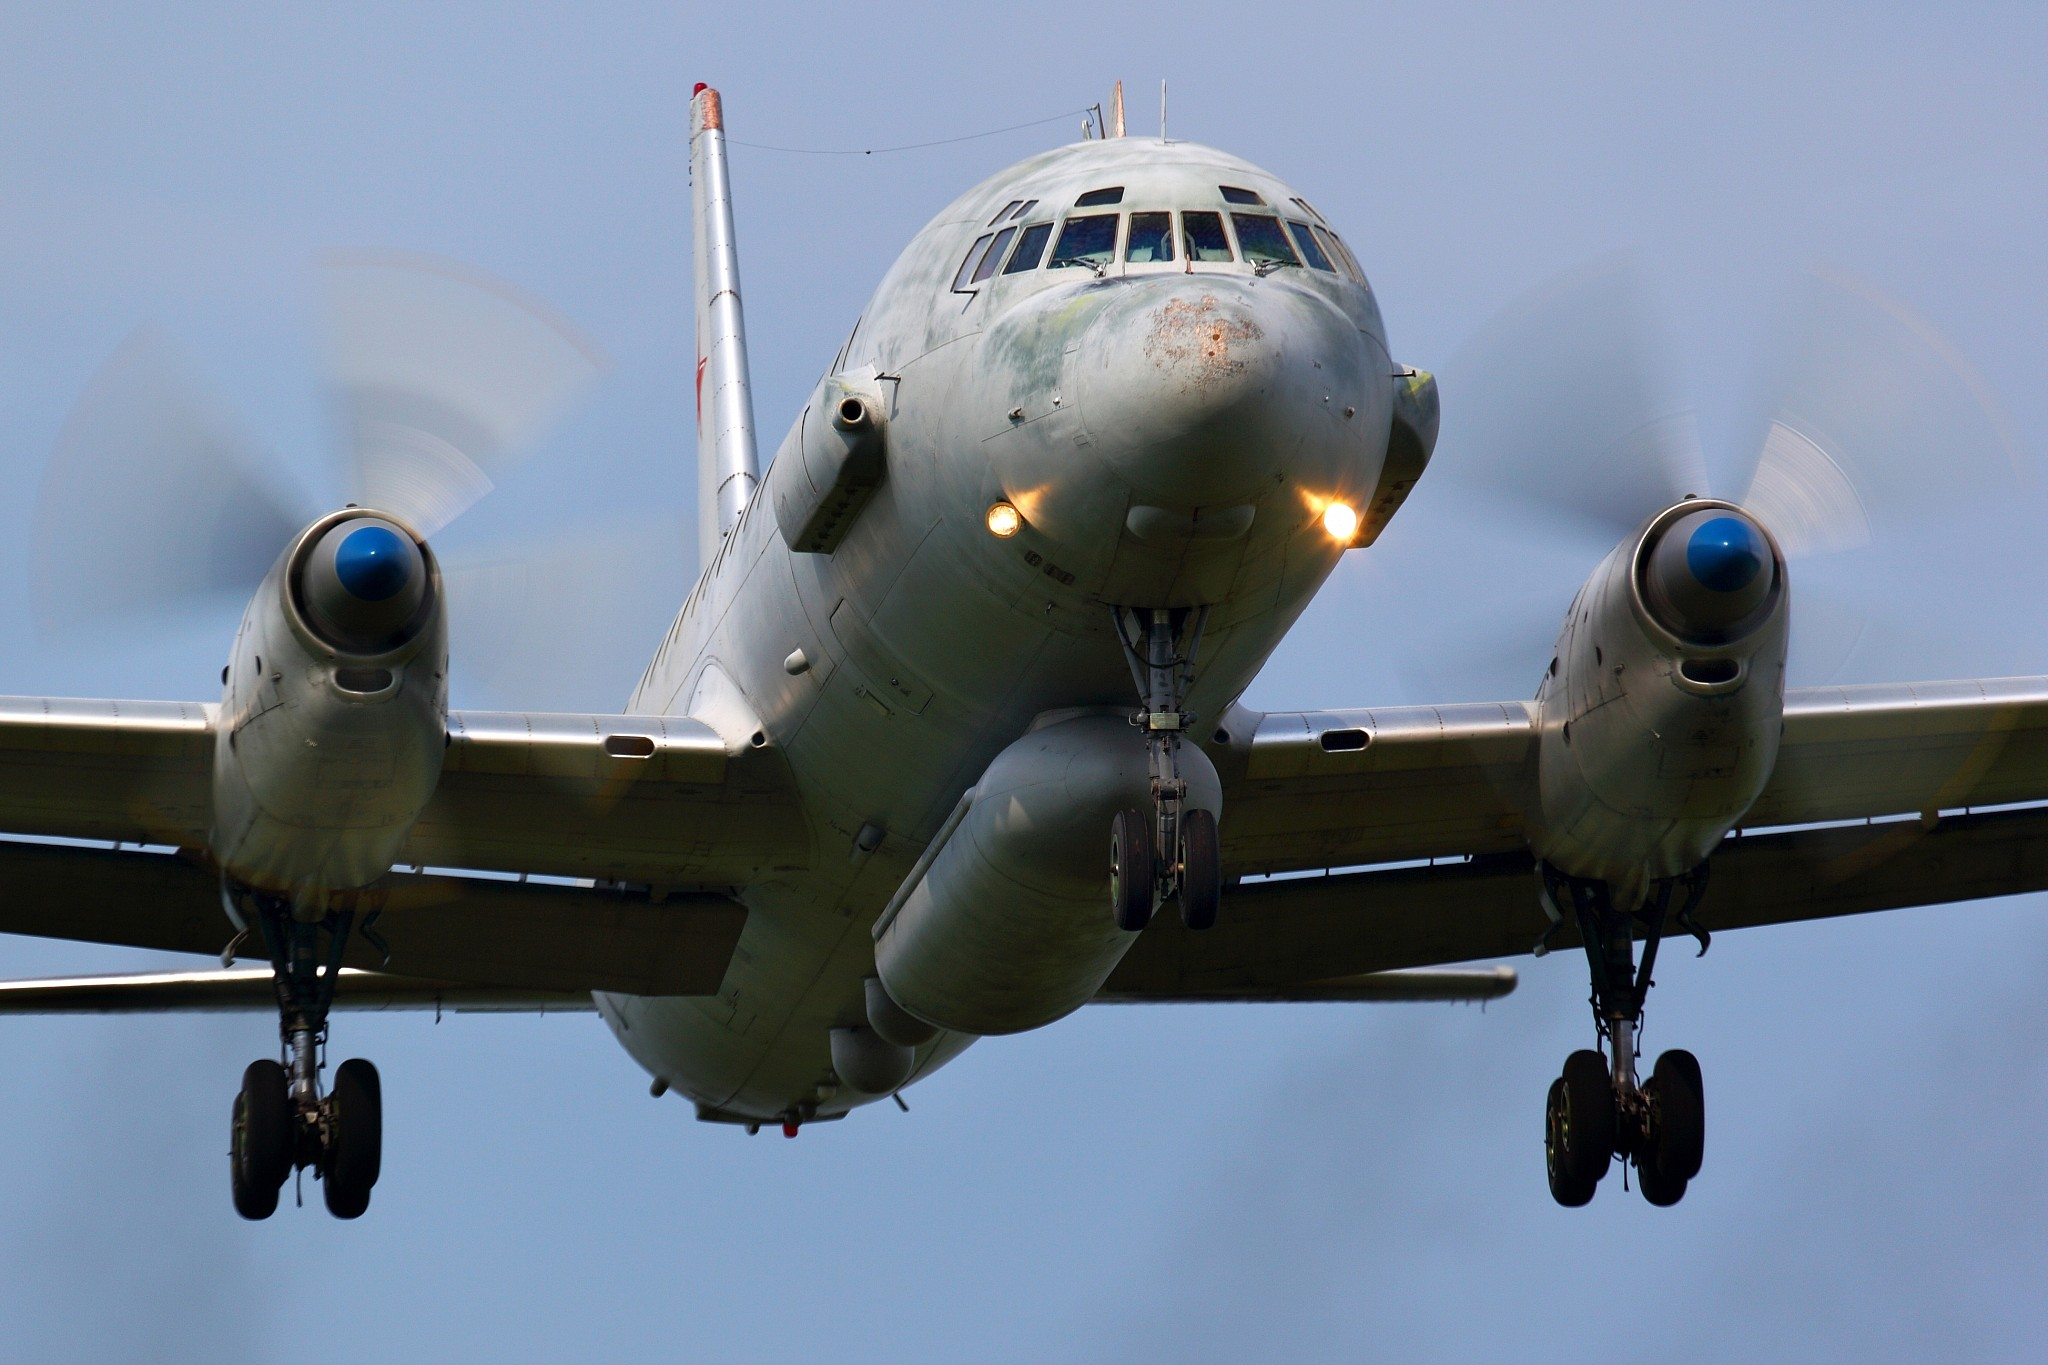 The military mistakenly shot down the plane 23